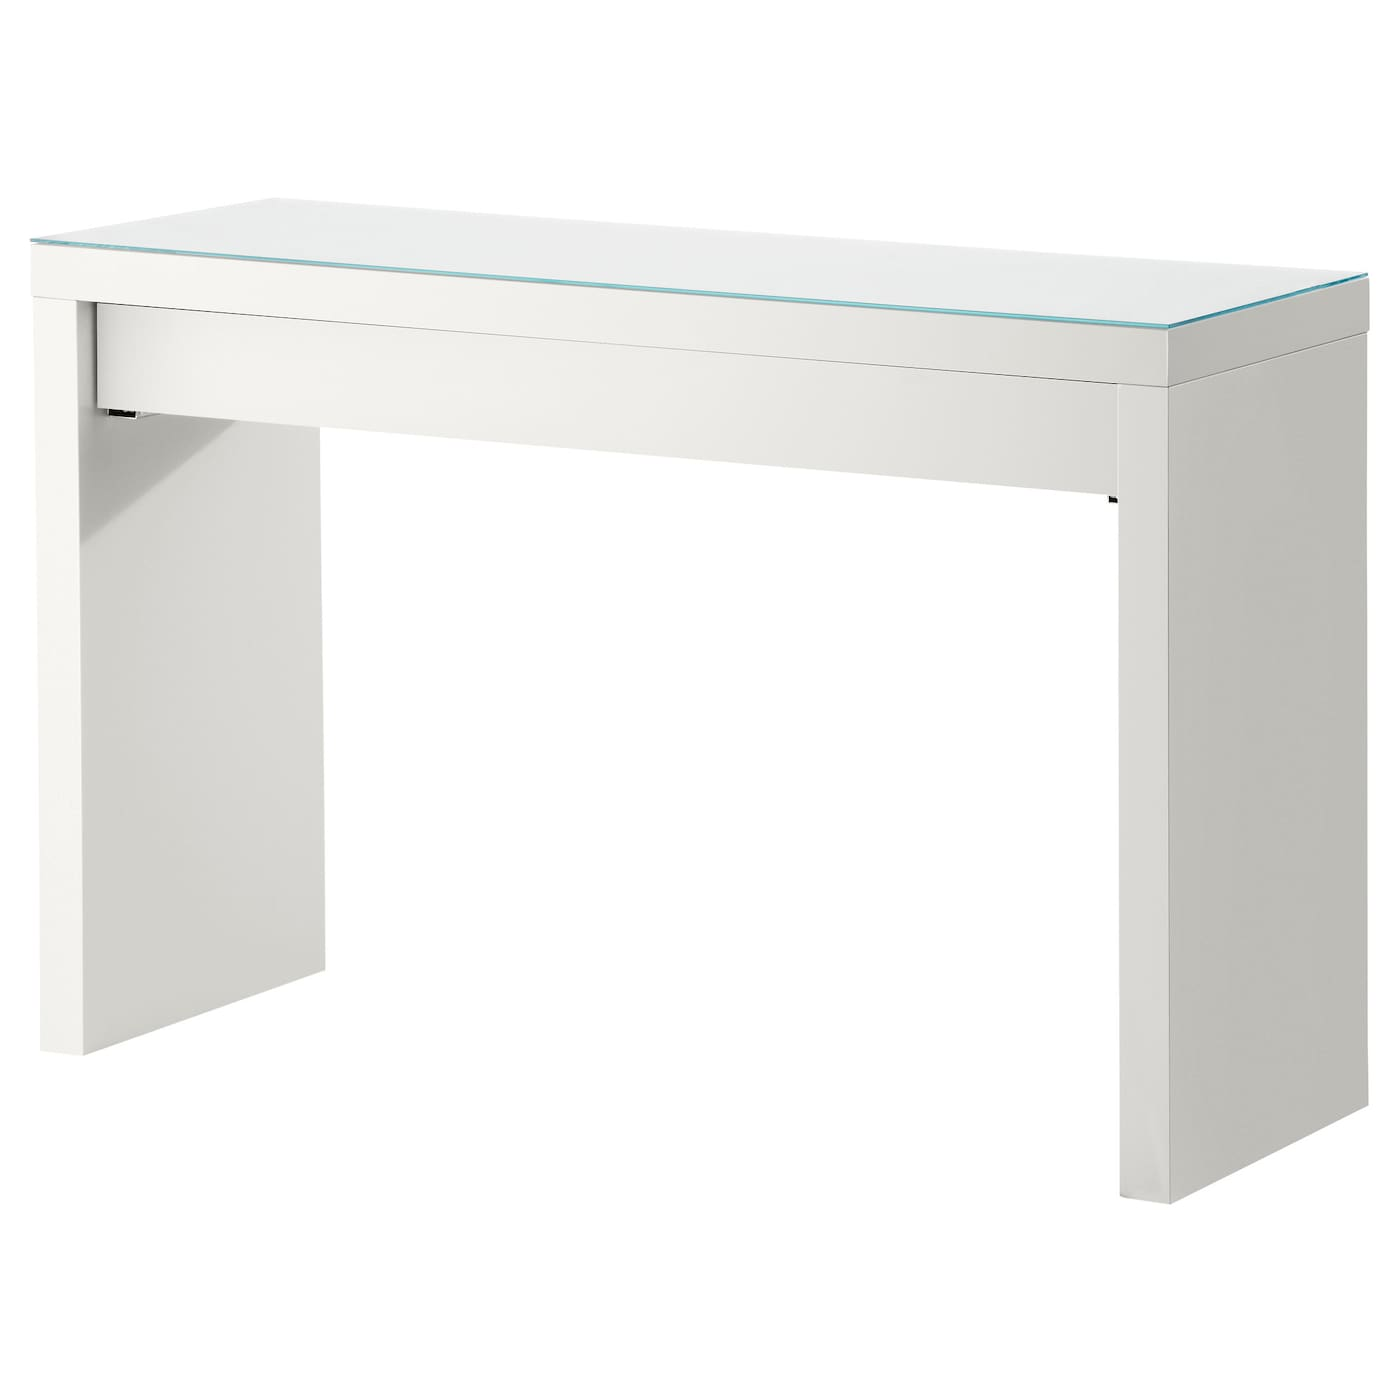 Malm dressing table white 120x41 cm ikea - Mesa auxiliar malm ikea ...